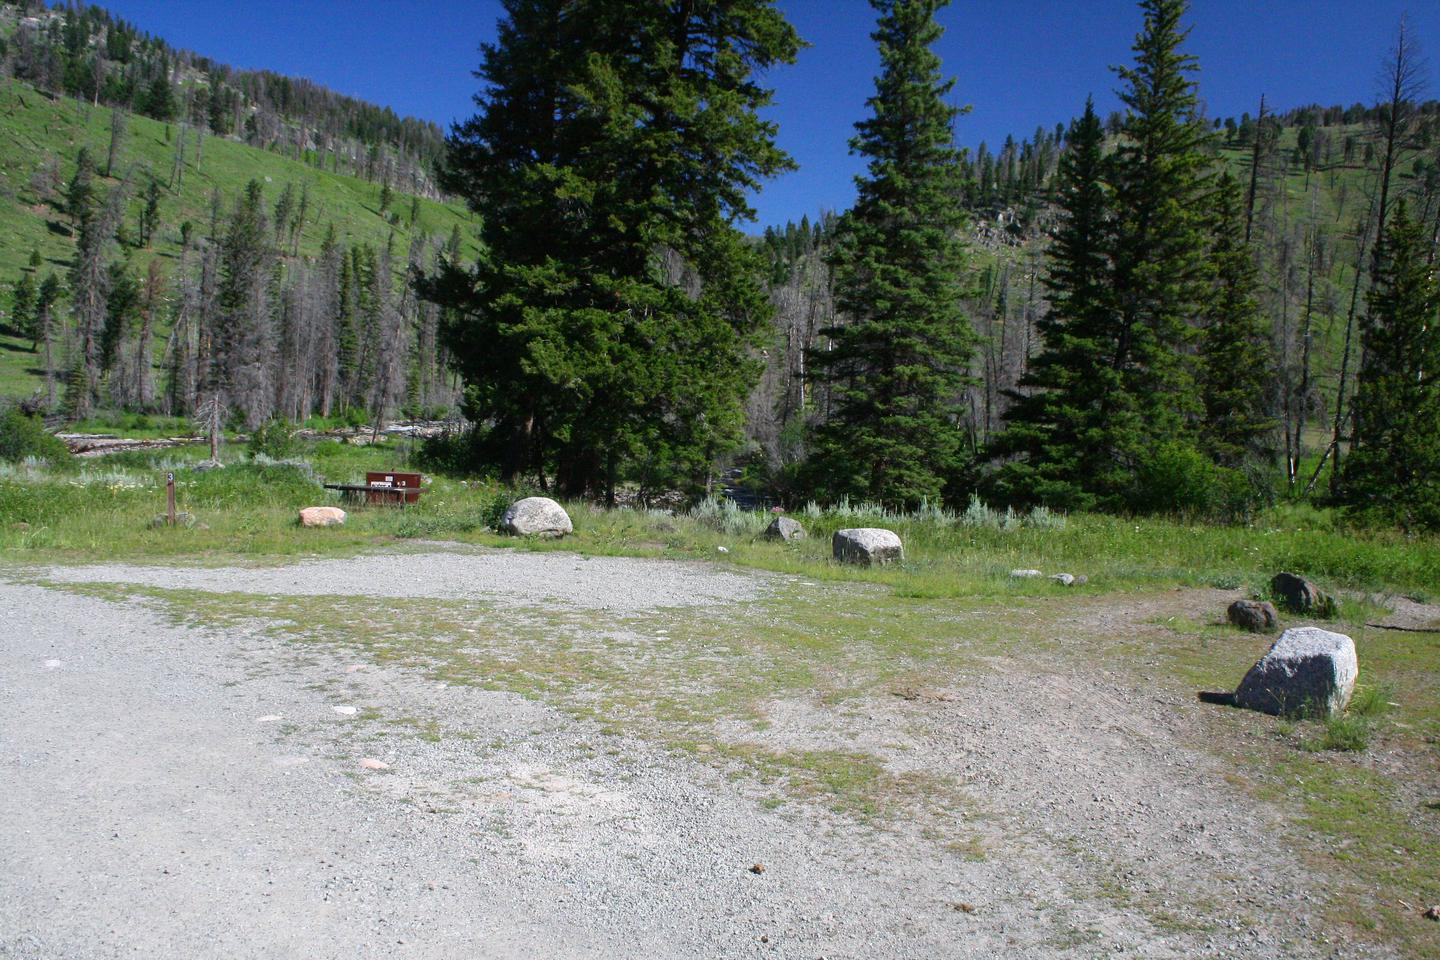 Slough Creek Campground site #3..Slough Creek Campground site #3